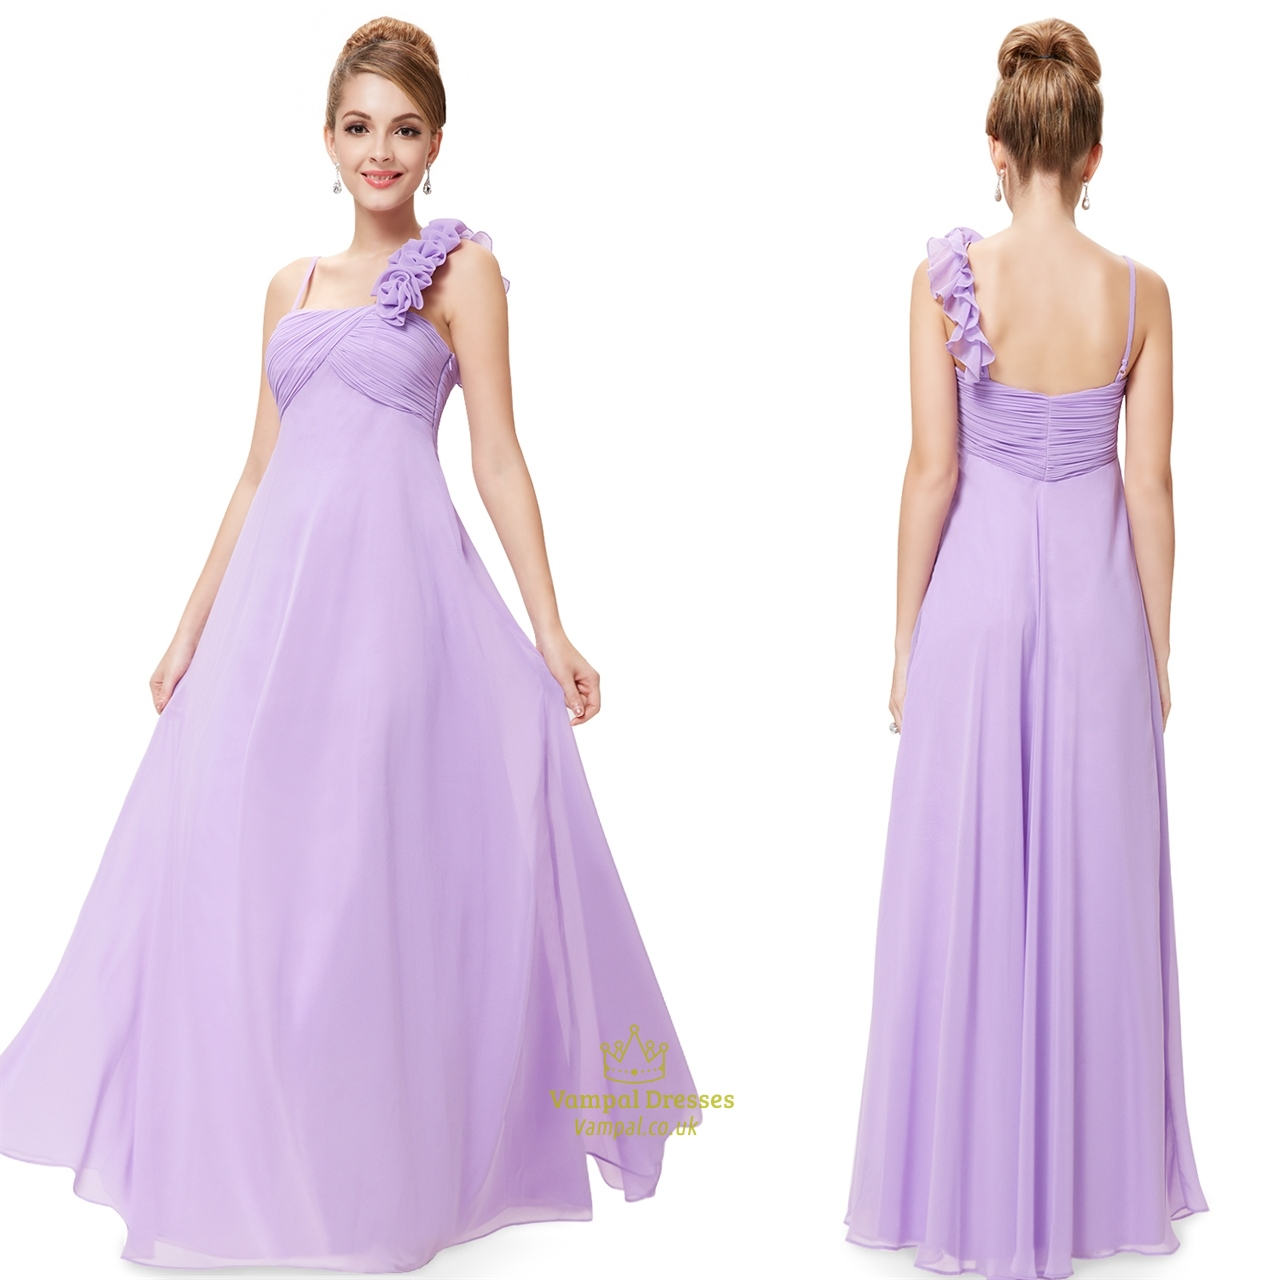 Lilac one shoulder bridesmaid dresses vampal dresses chiffon one shoulder bridesmaid dresses longone shoulder bridesmaid dresses real wedding uk ombrellifo Images